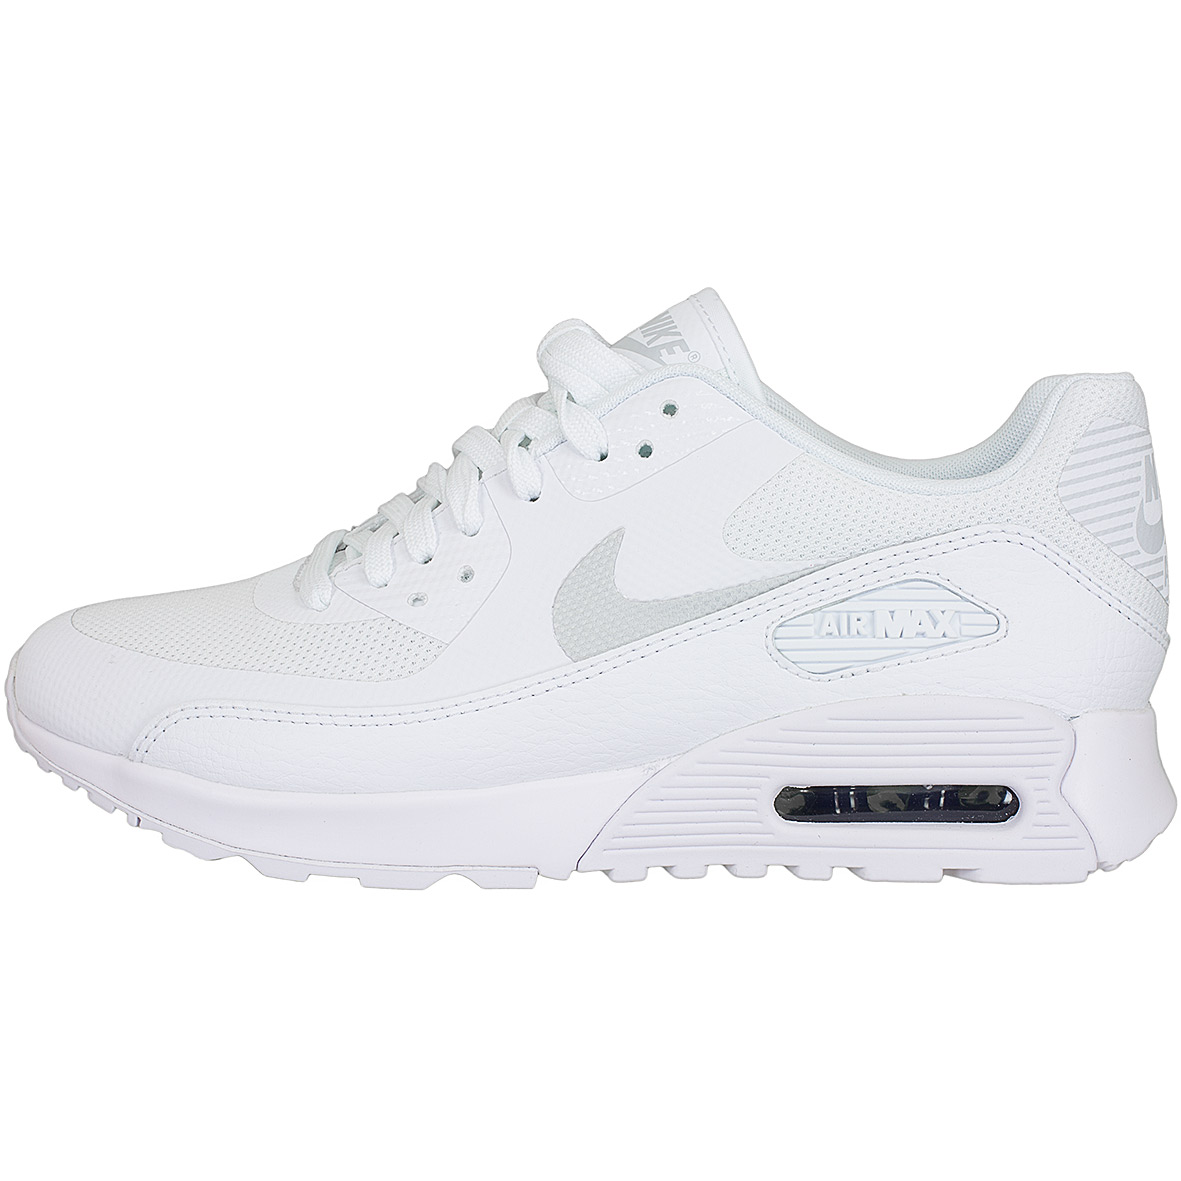 Damen NIKE W AIR MAX 90 | Weiß | 139.99 </div>